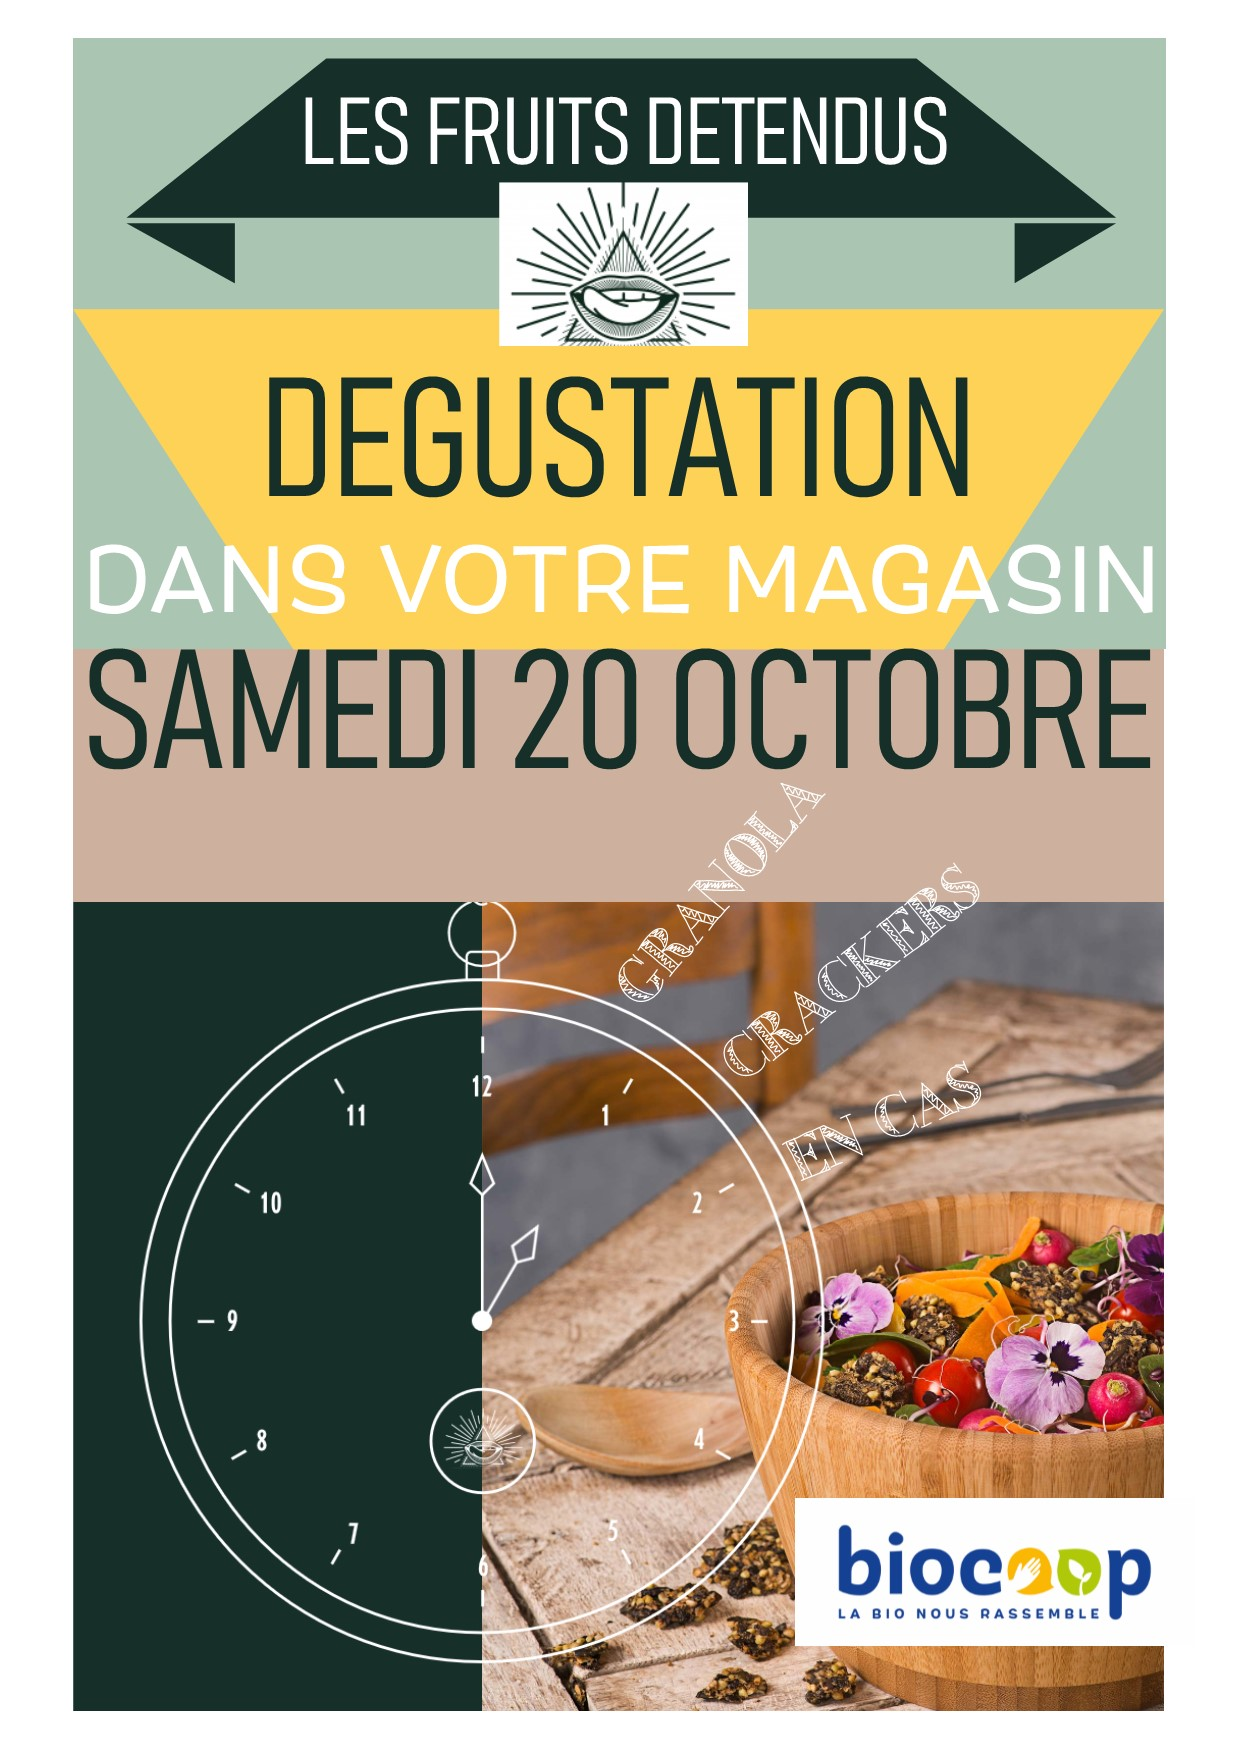 DEGUSTATION INCROYABLE DE FRUITS DETENDUS !